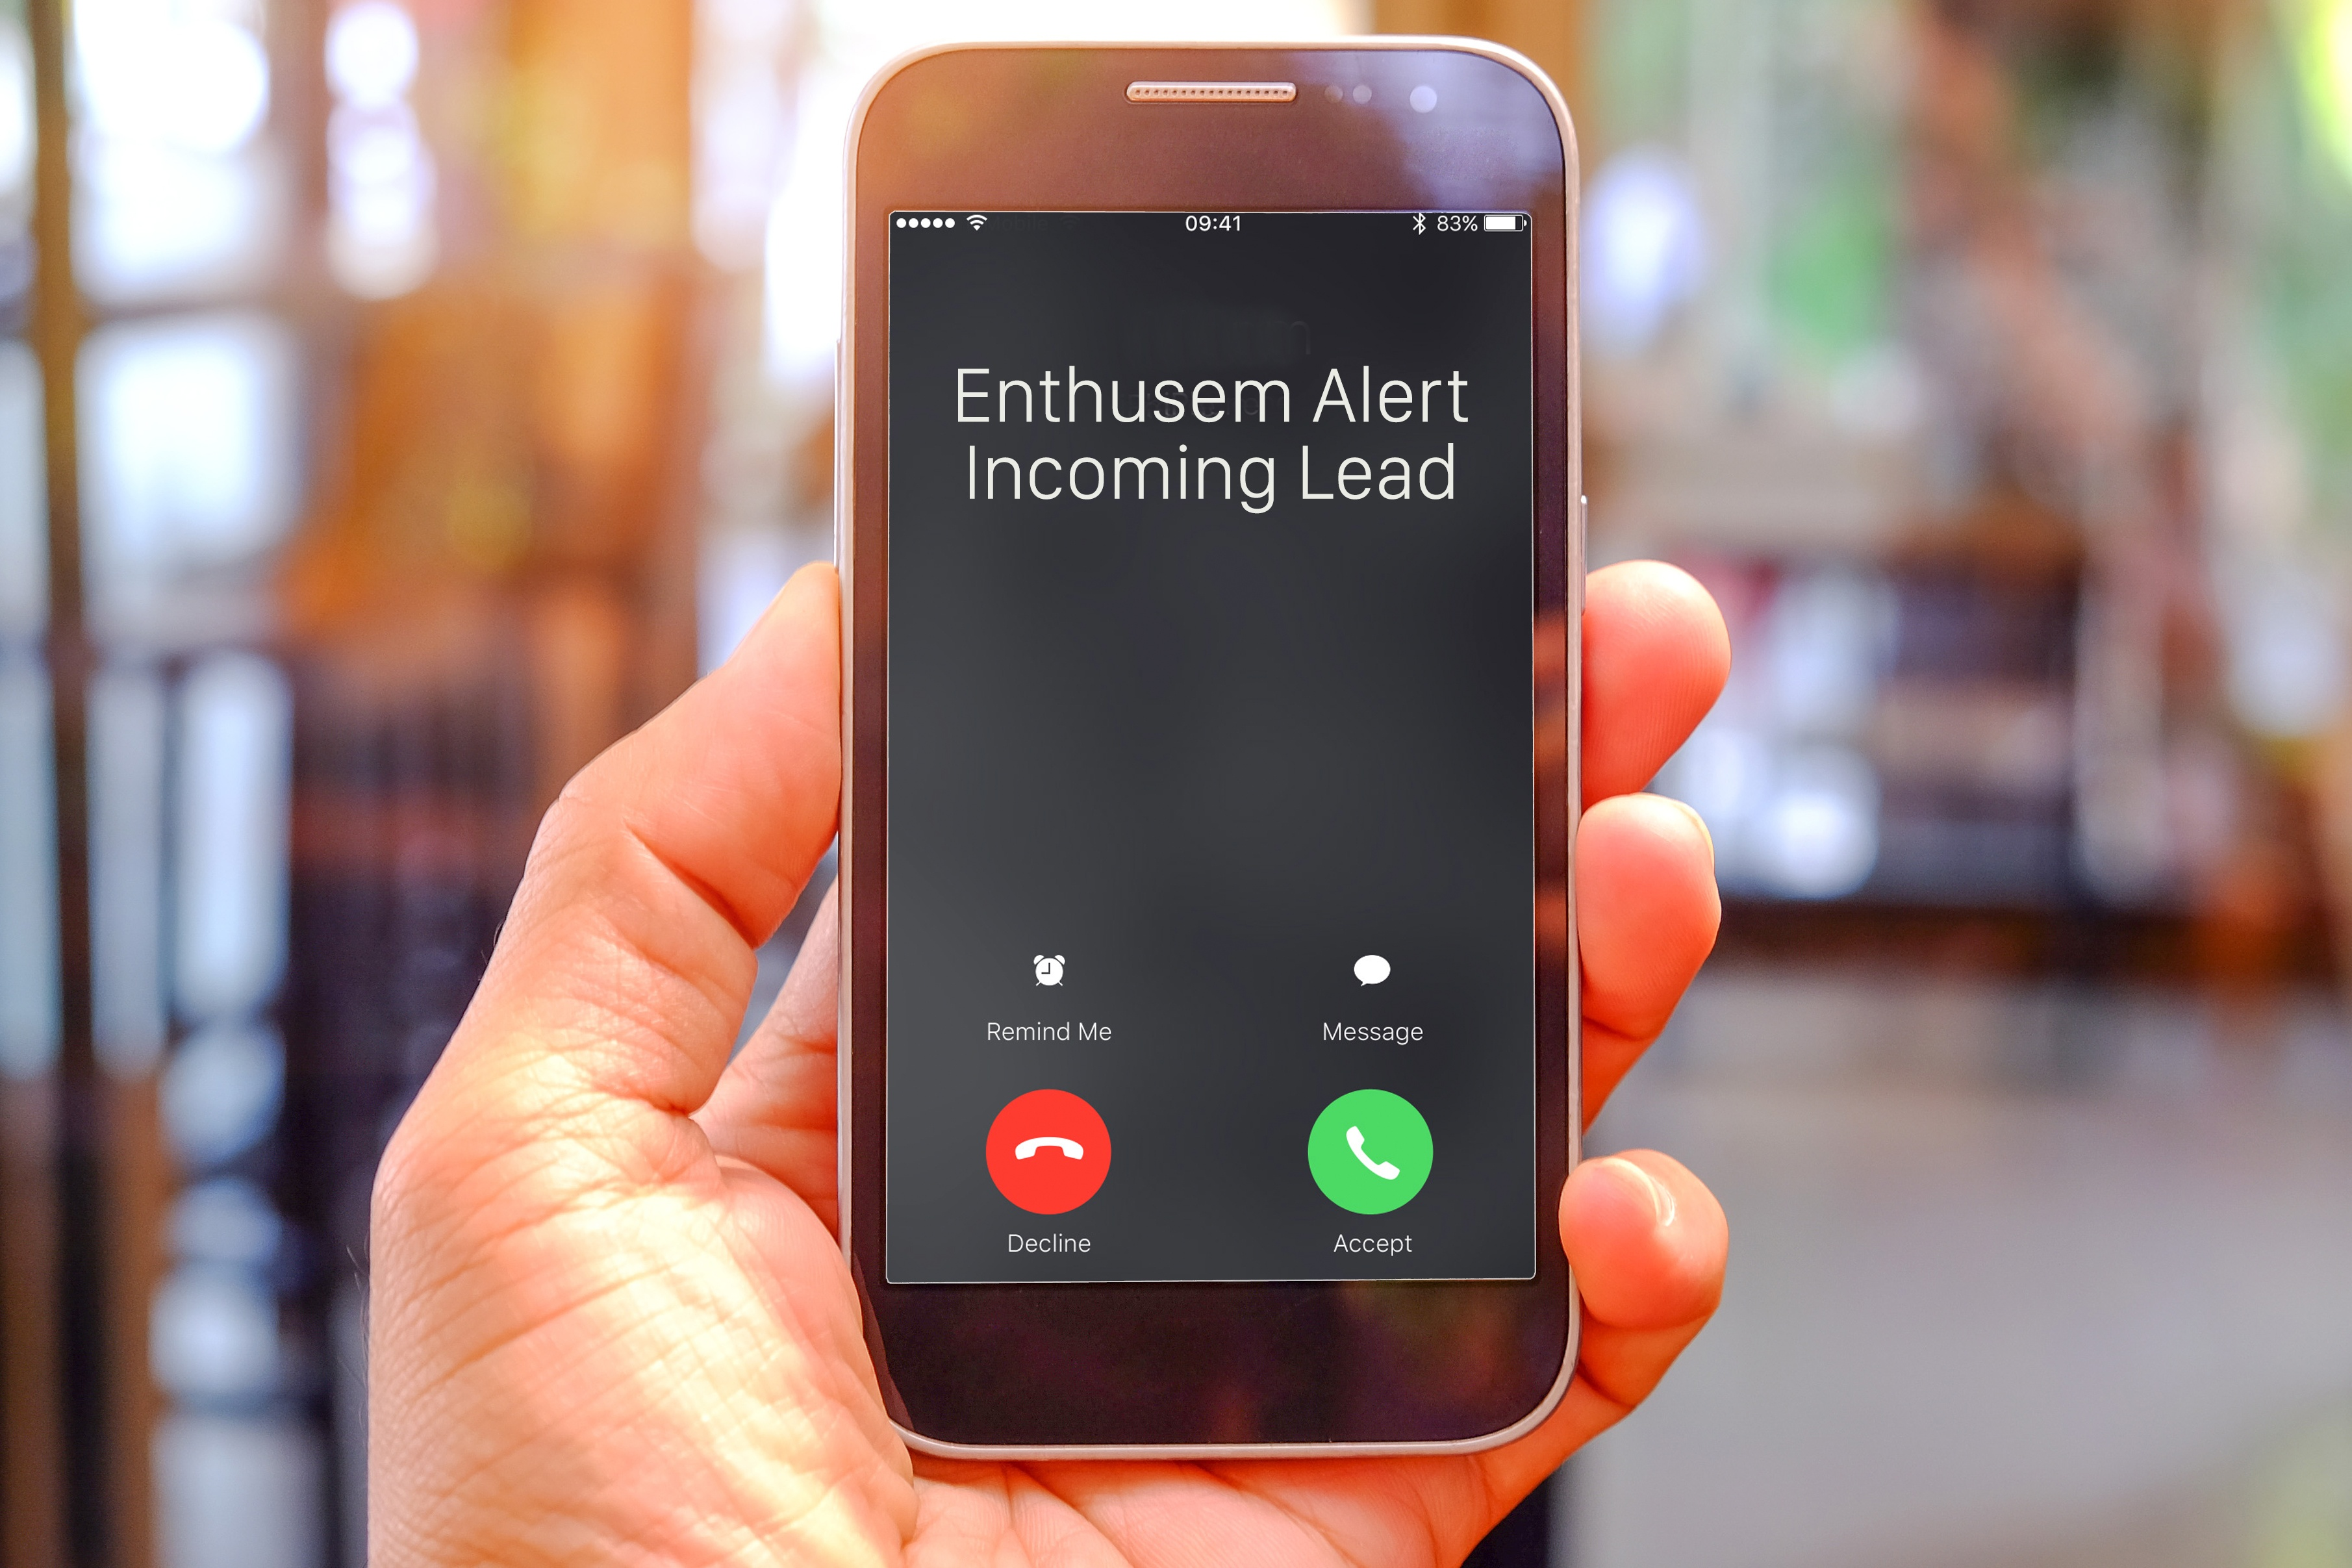 Enthusem rings your phone when it's time to call